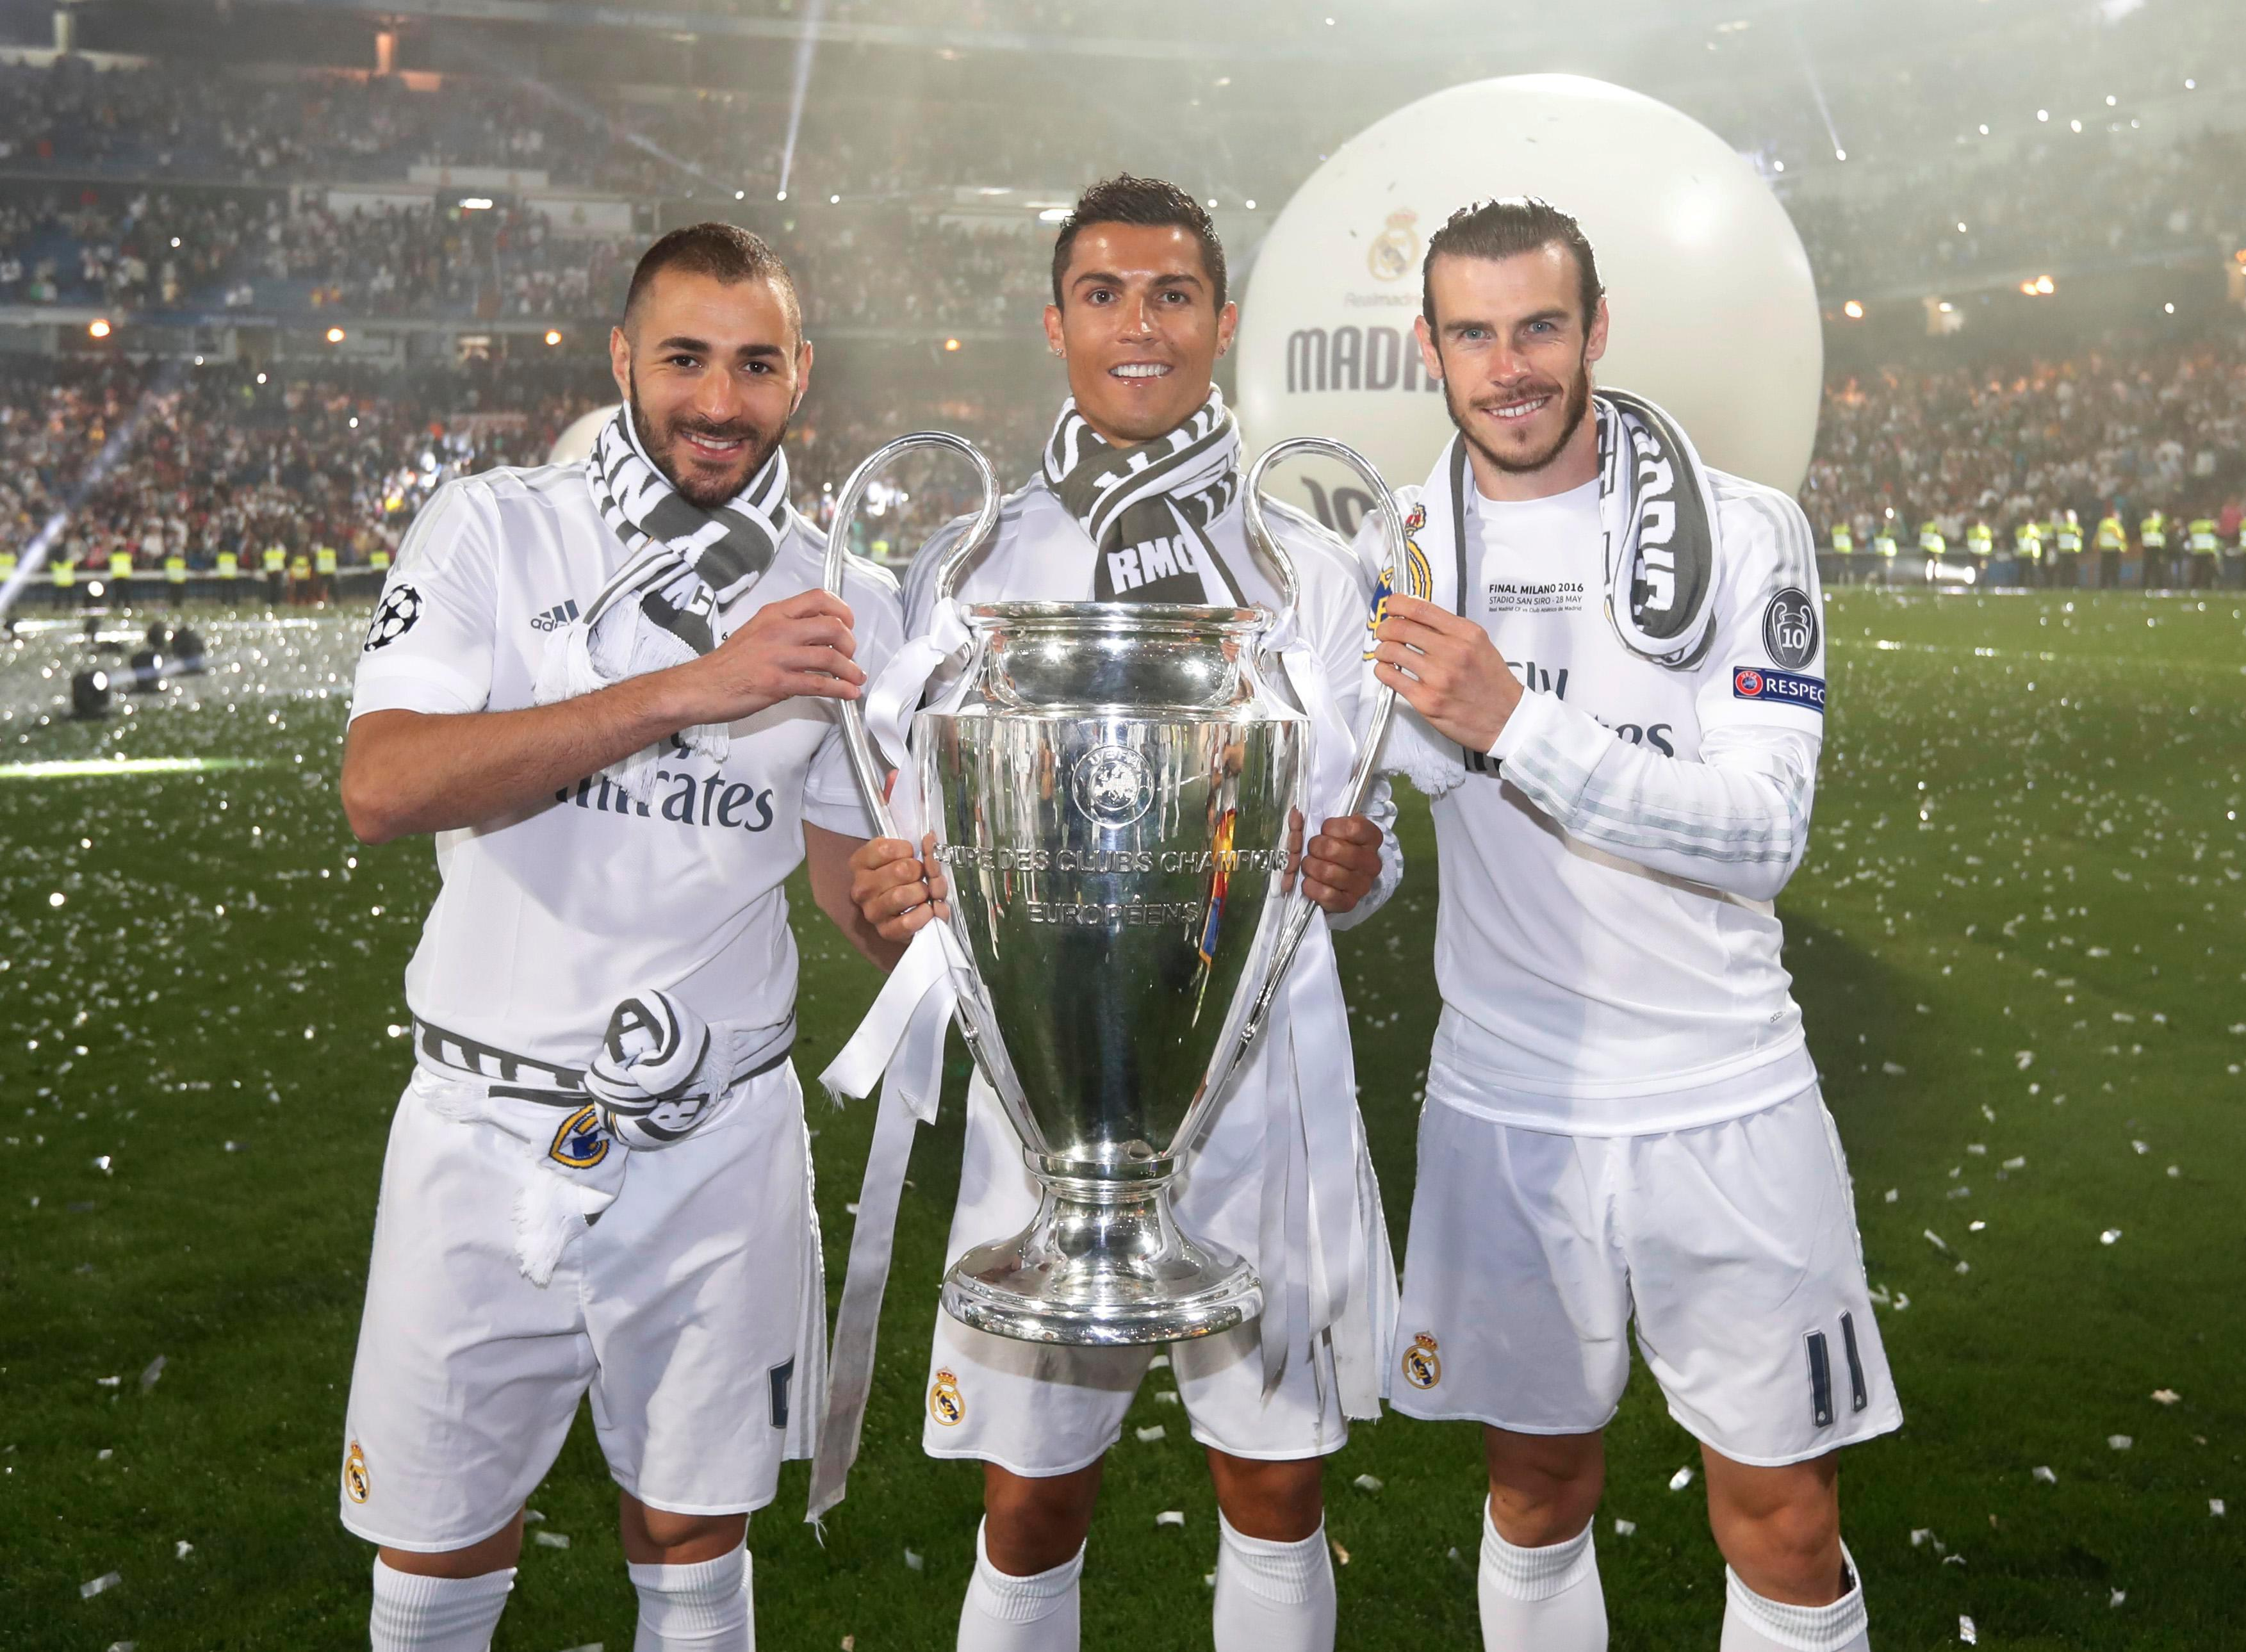 Reports suggest Zinedine Zidane is willing to offload either Karim Benzema, Cristiano Ronaldo or Gareth Bale to land Kylian Mbappe